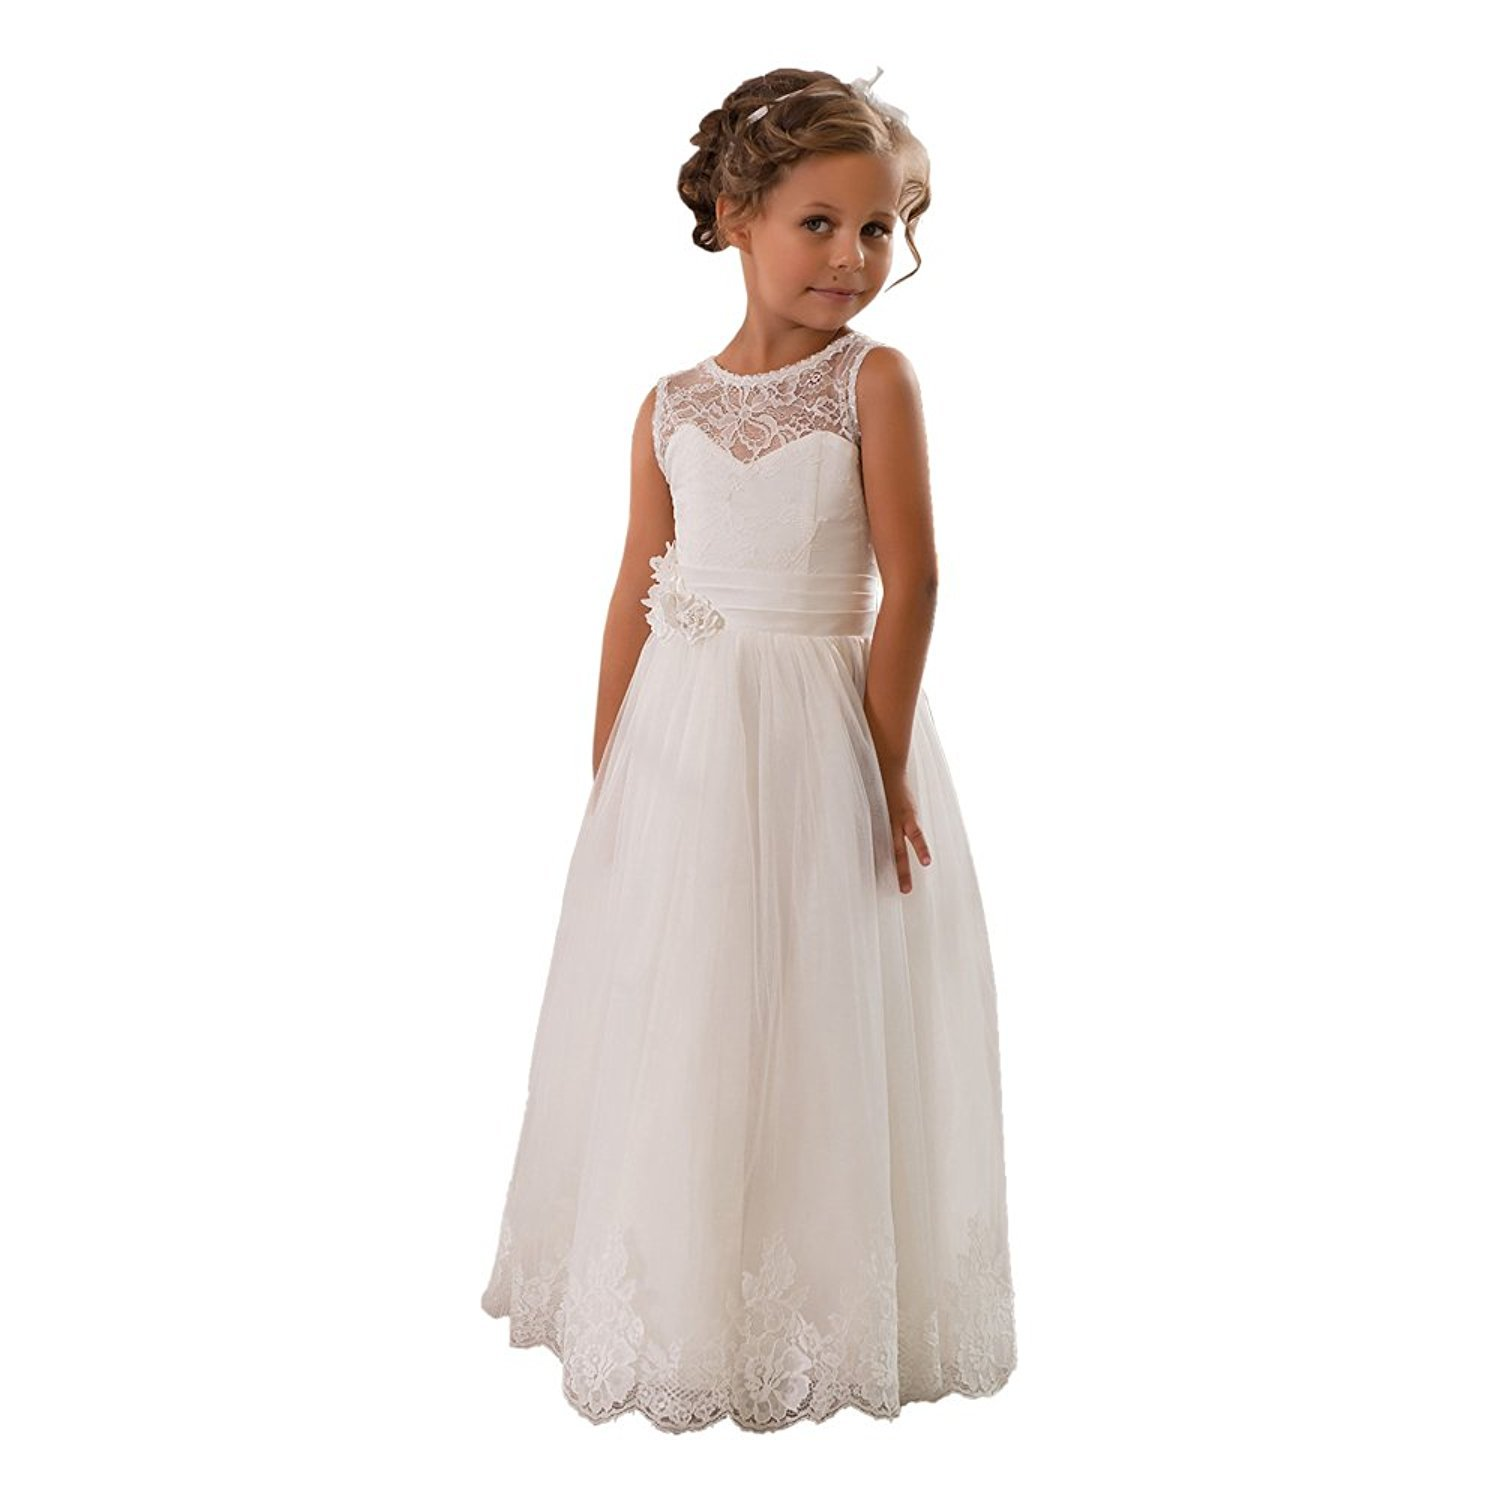 Lace Embellished A-Line Sleeveless Girls Wedding Party Dresses, Ivory, Size 8, Child (8-9) yrs